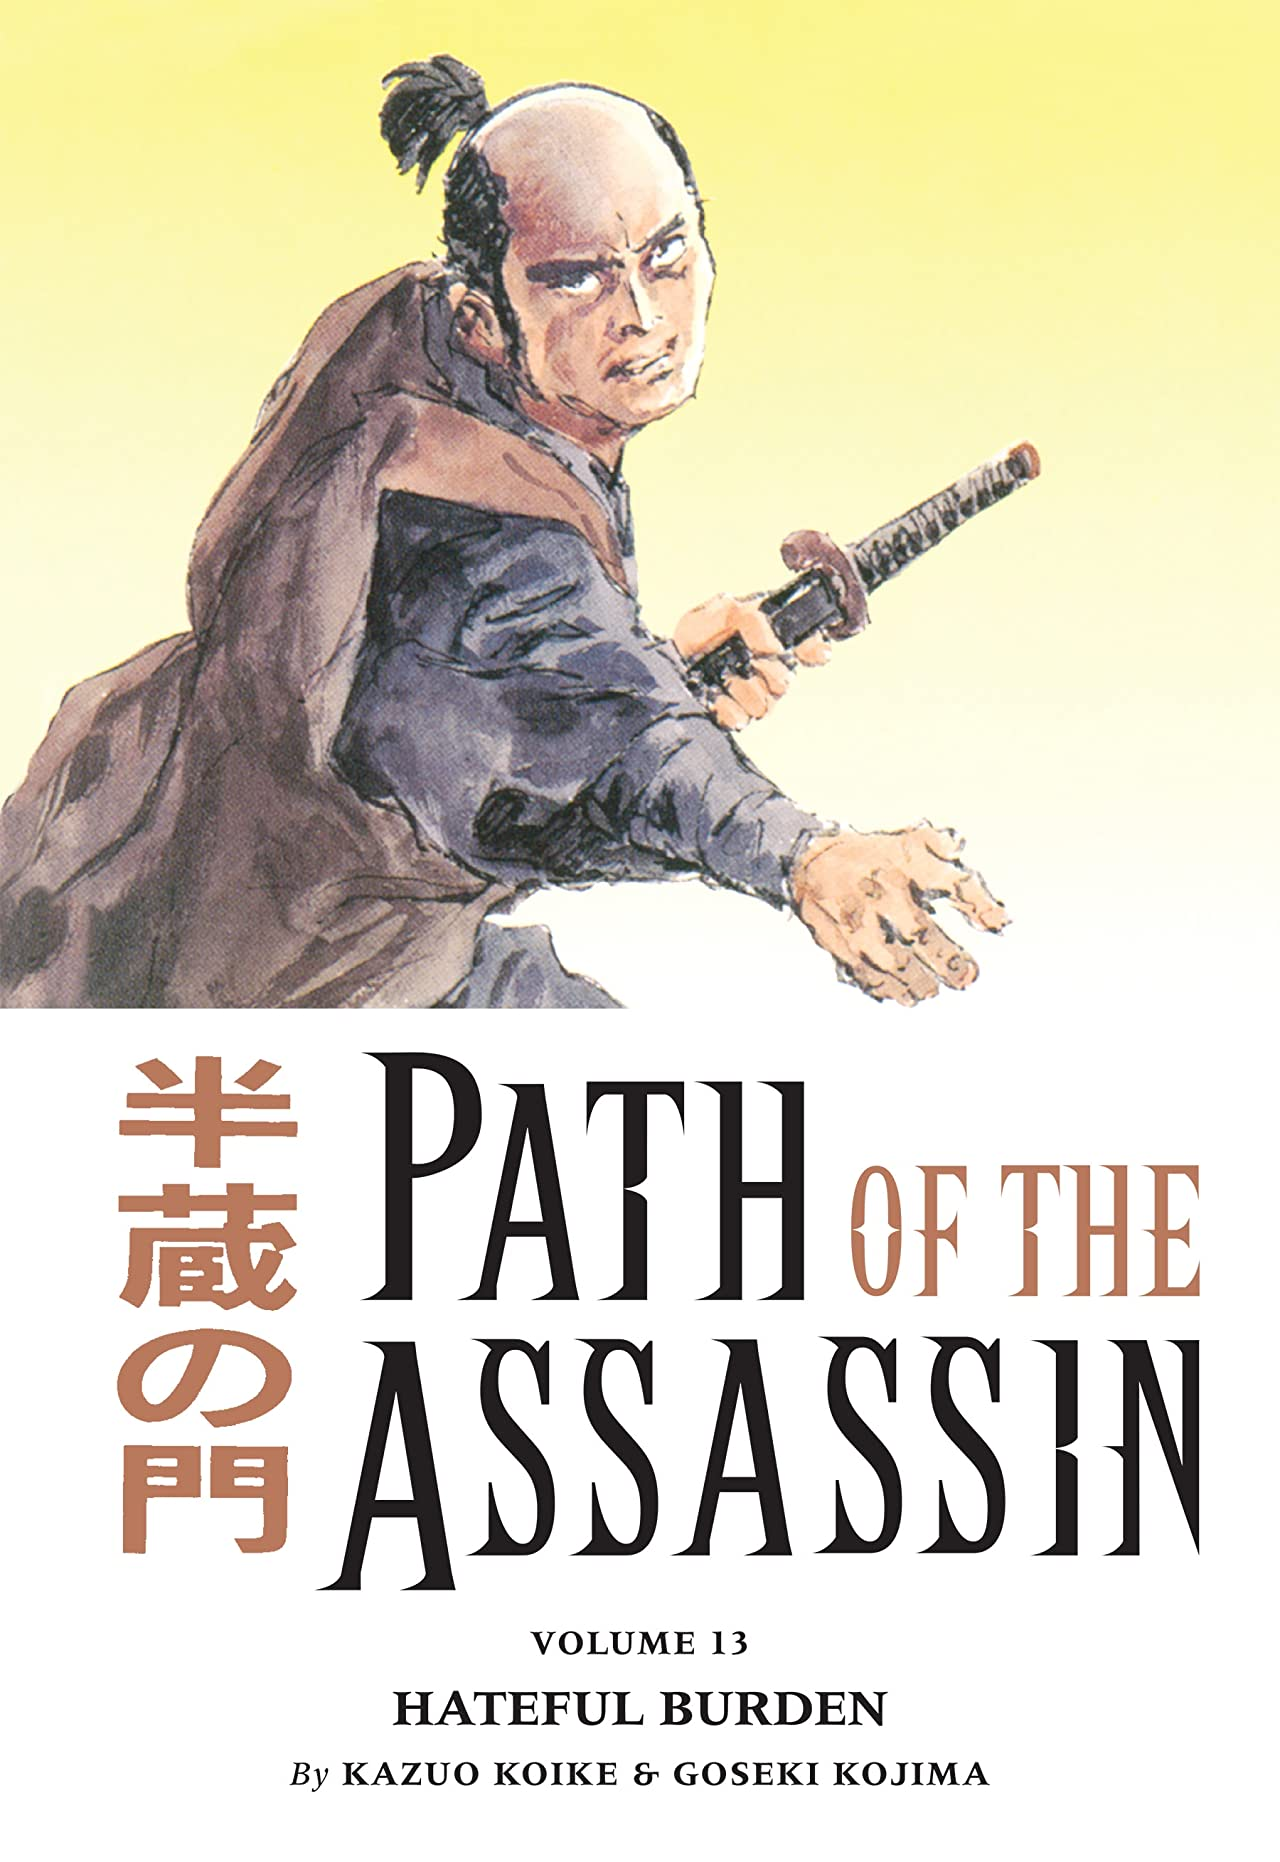 Path of the Assassin Vol. 13: Hateful Burden